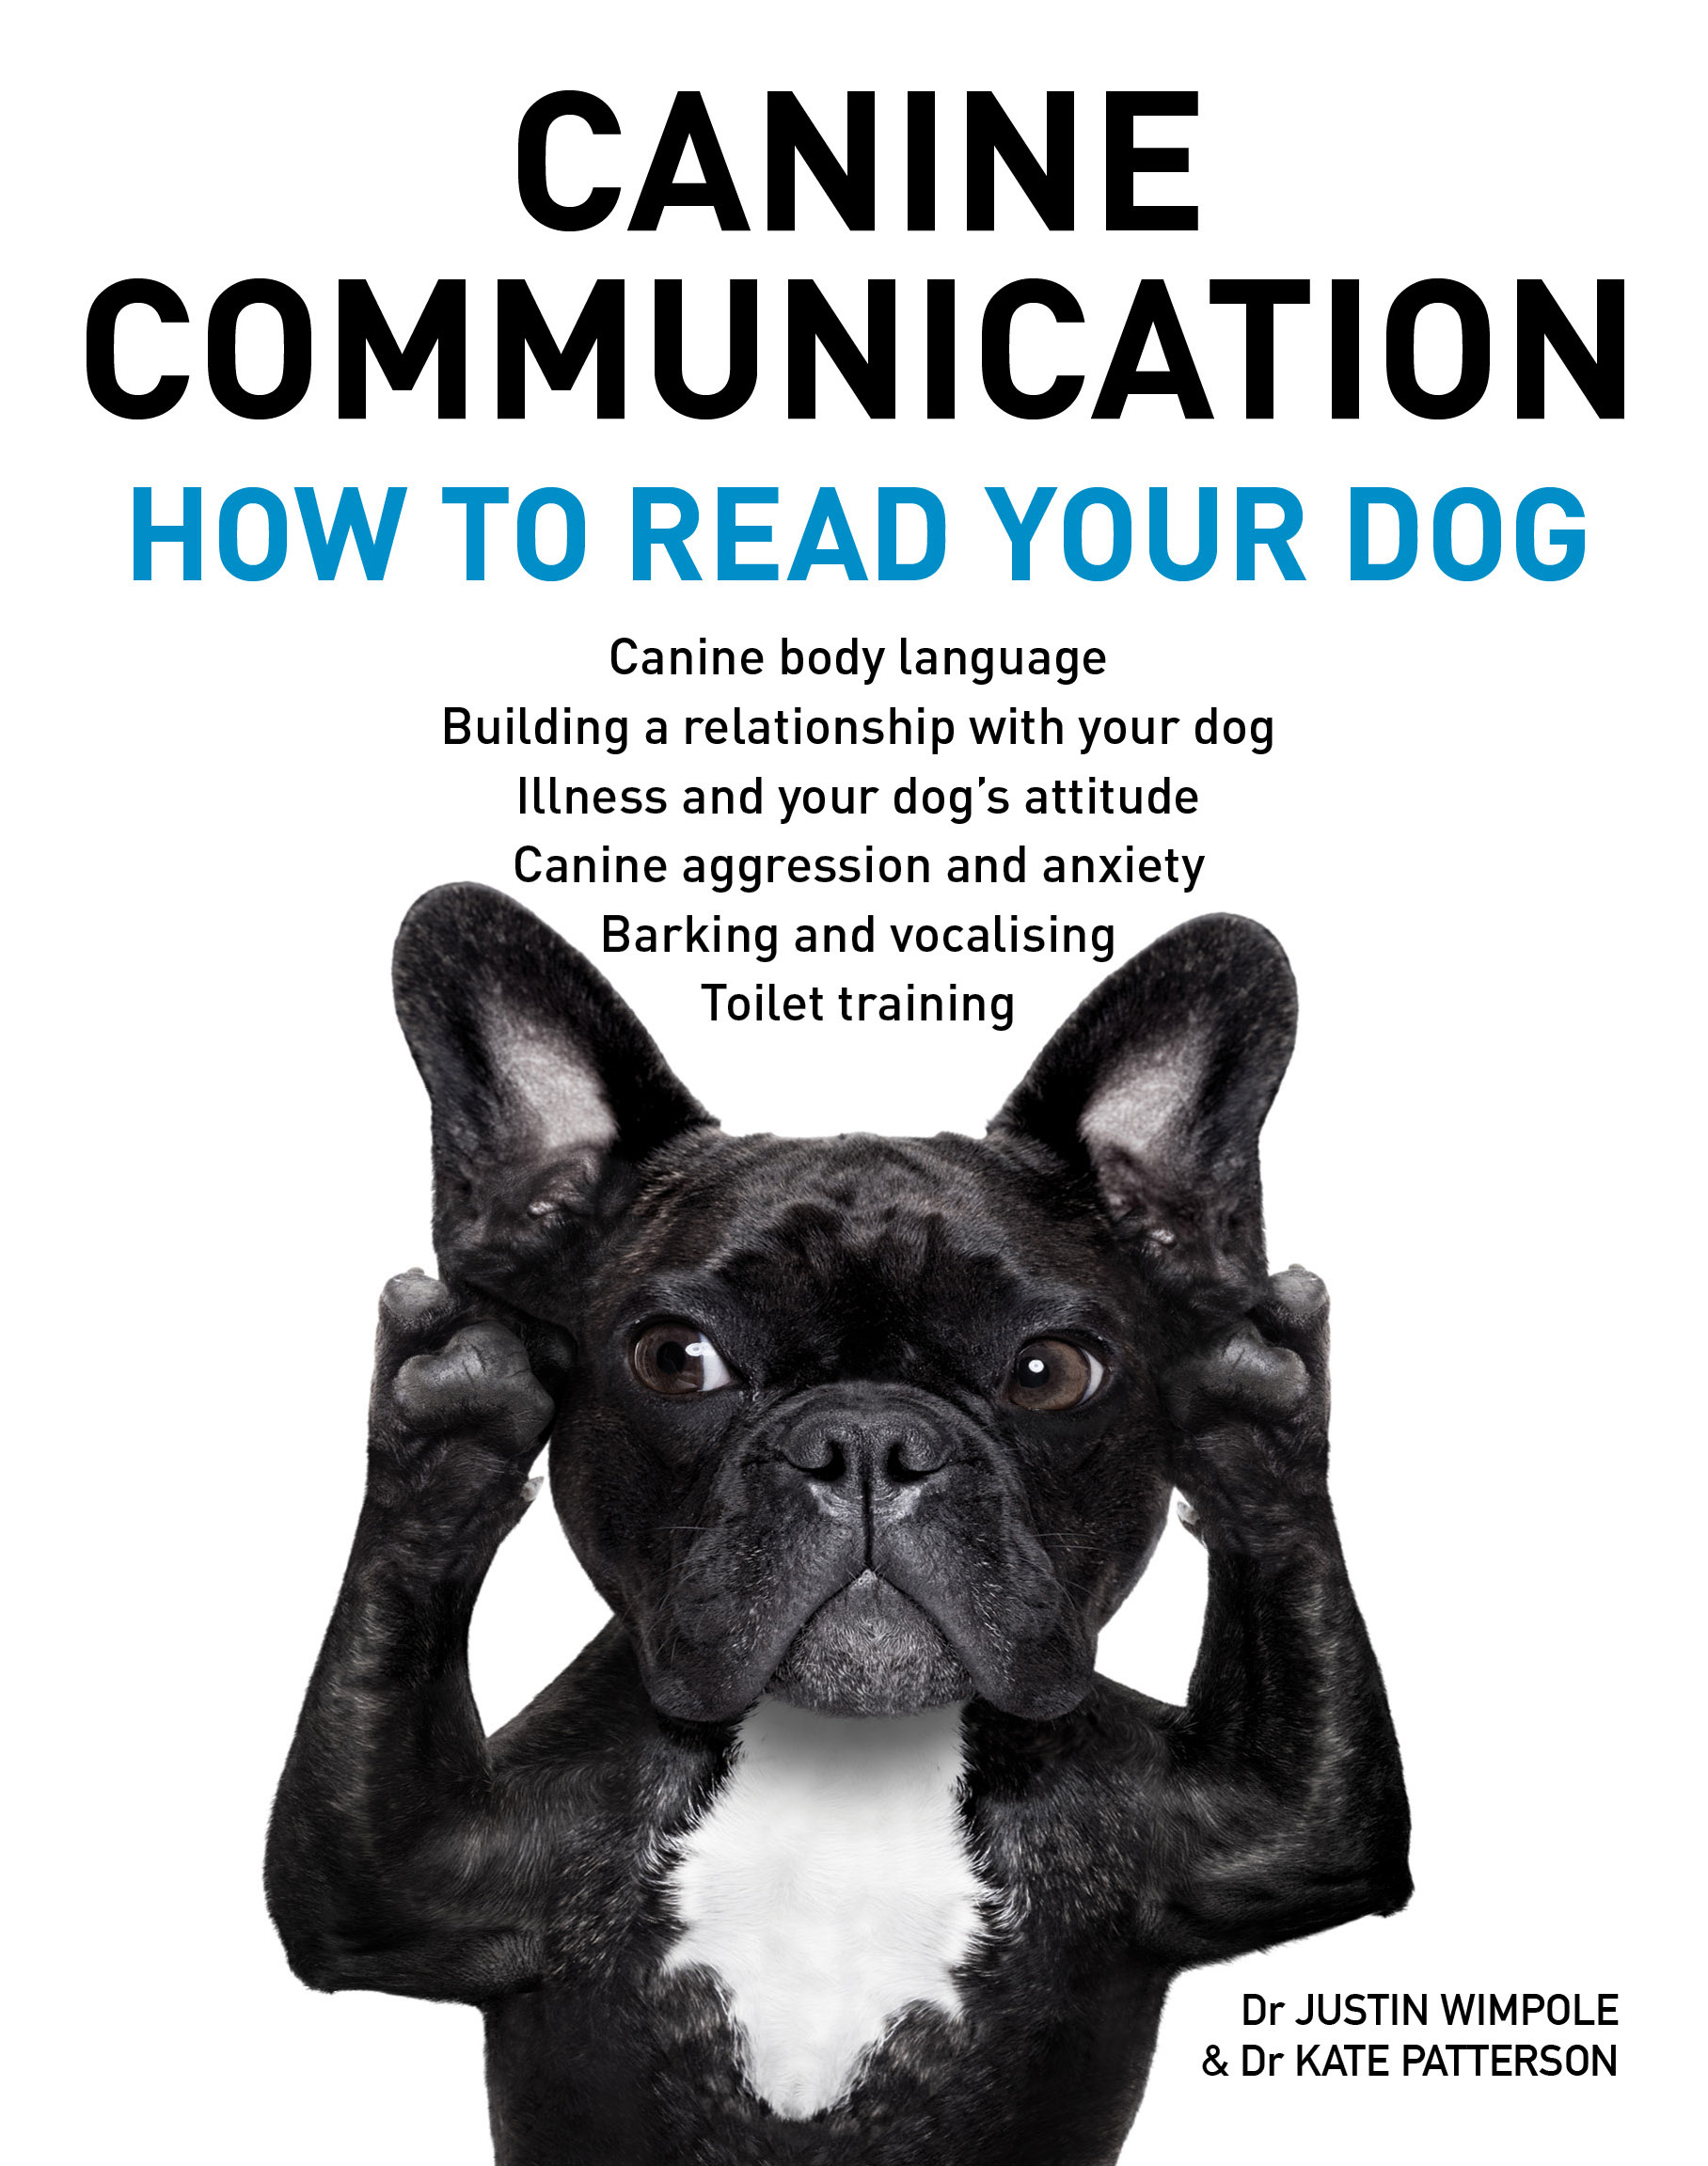 Canine Communication